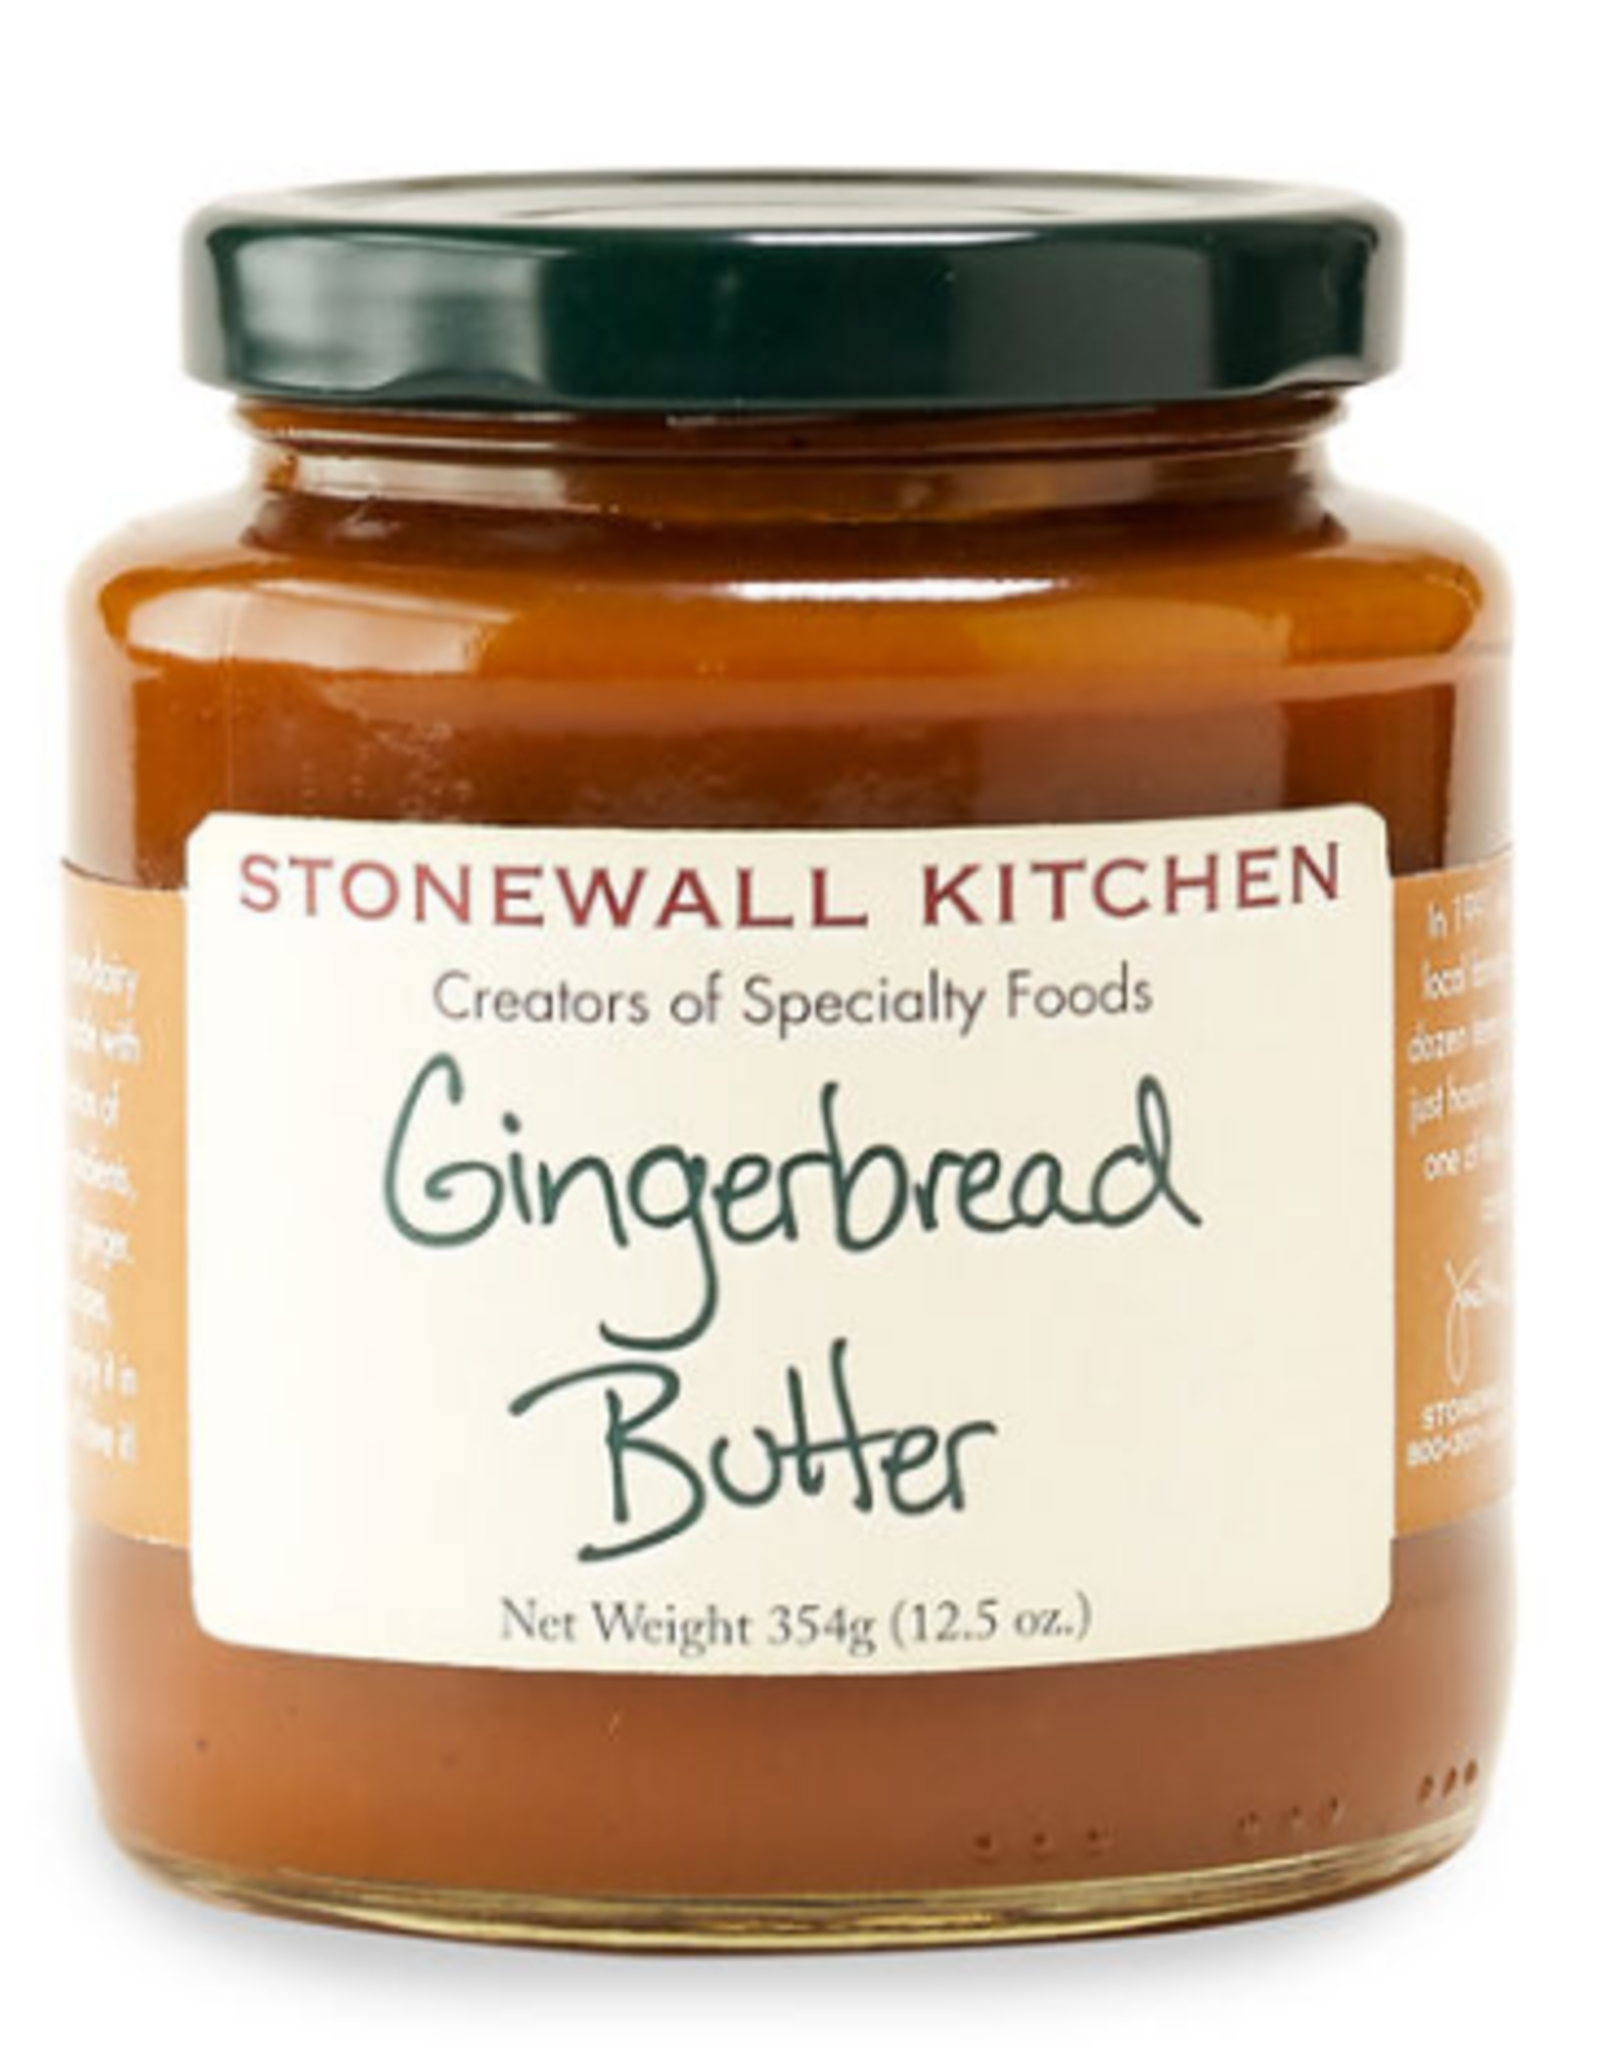 Stonewall Kitchen Holiday Gingerbread Butter